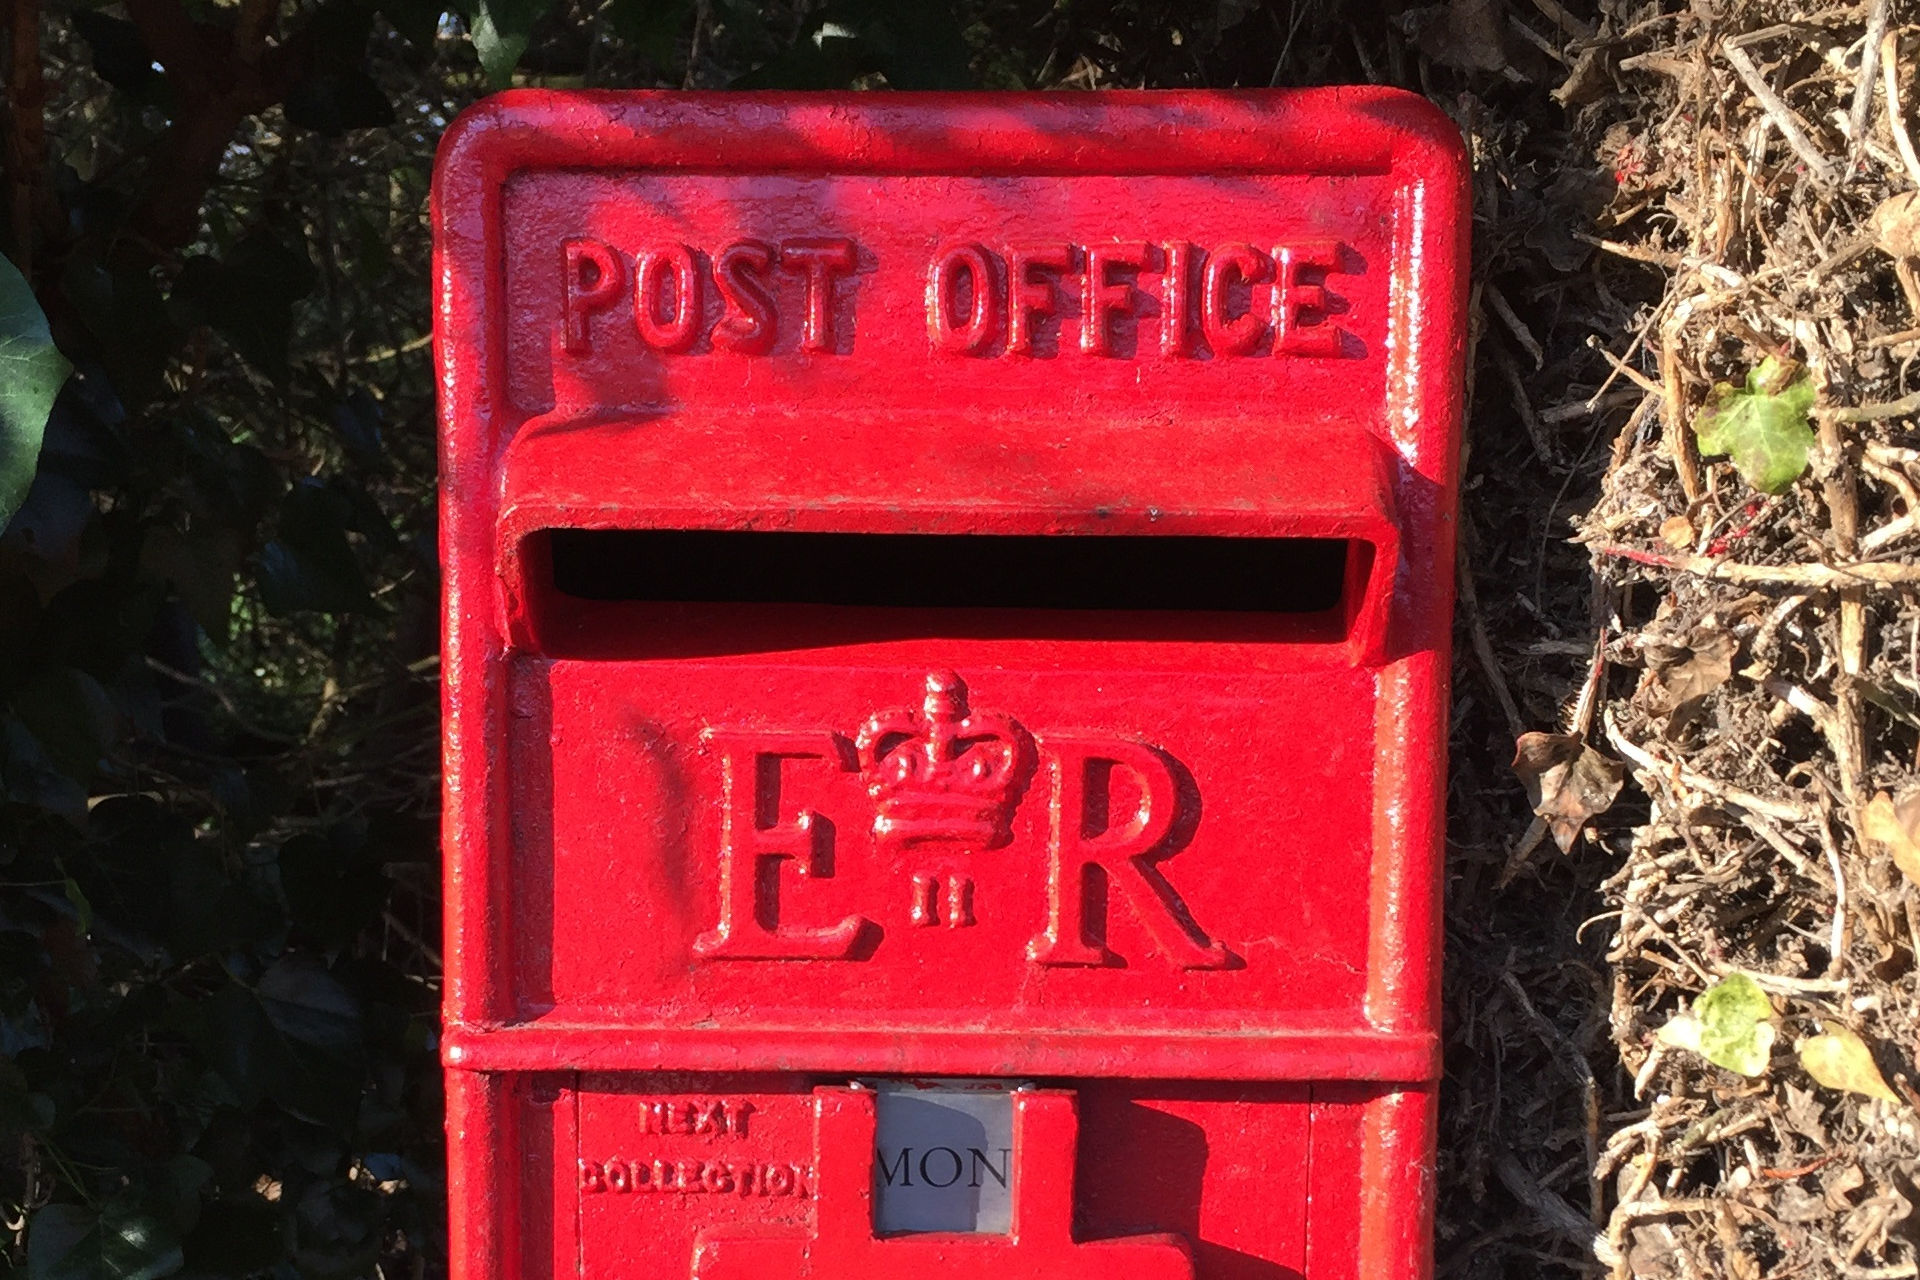 Not a pillar box. Credit: DebEditor on Pixabay.